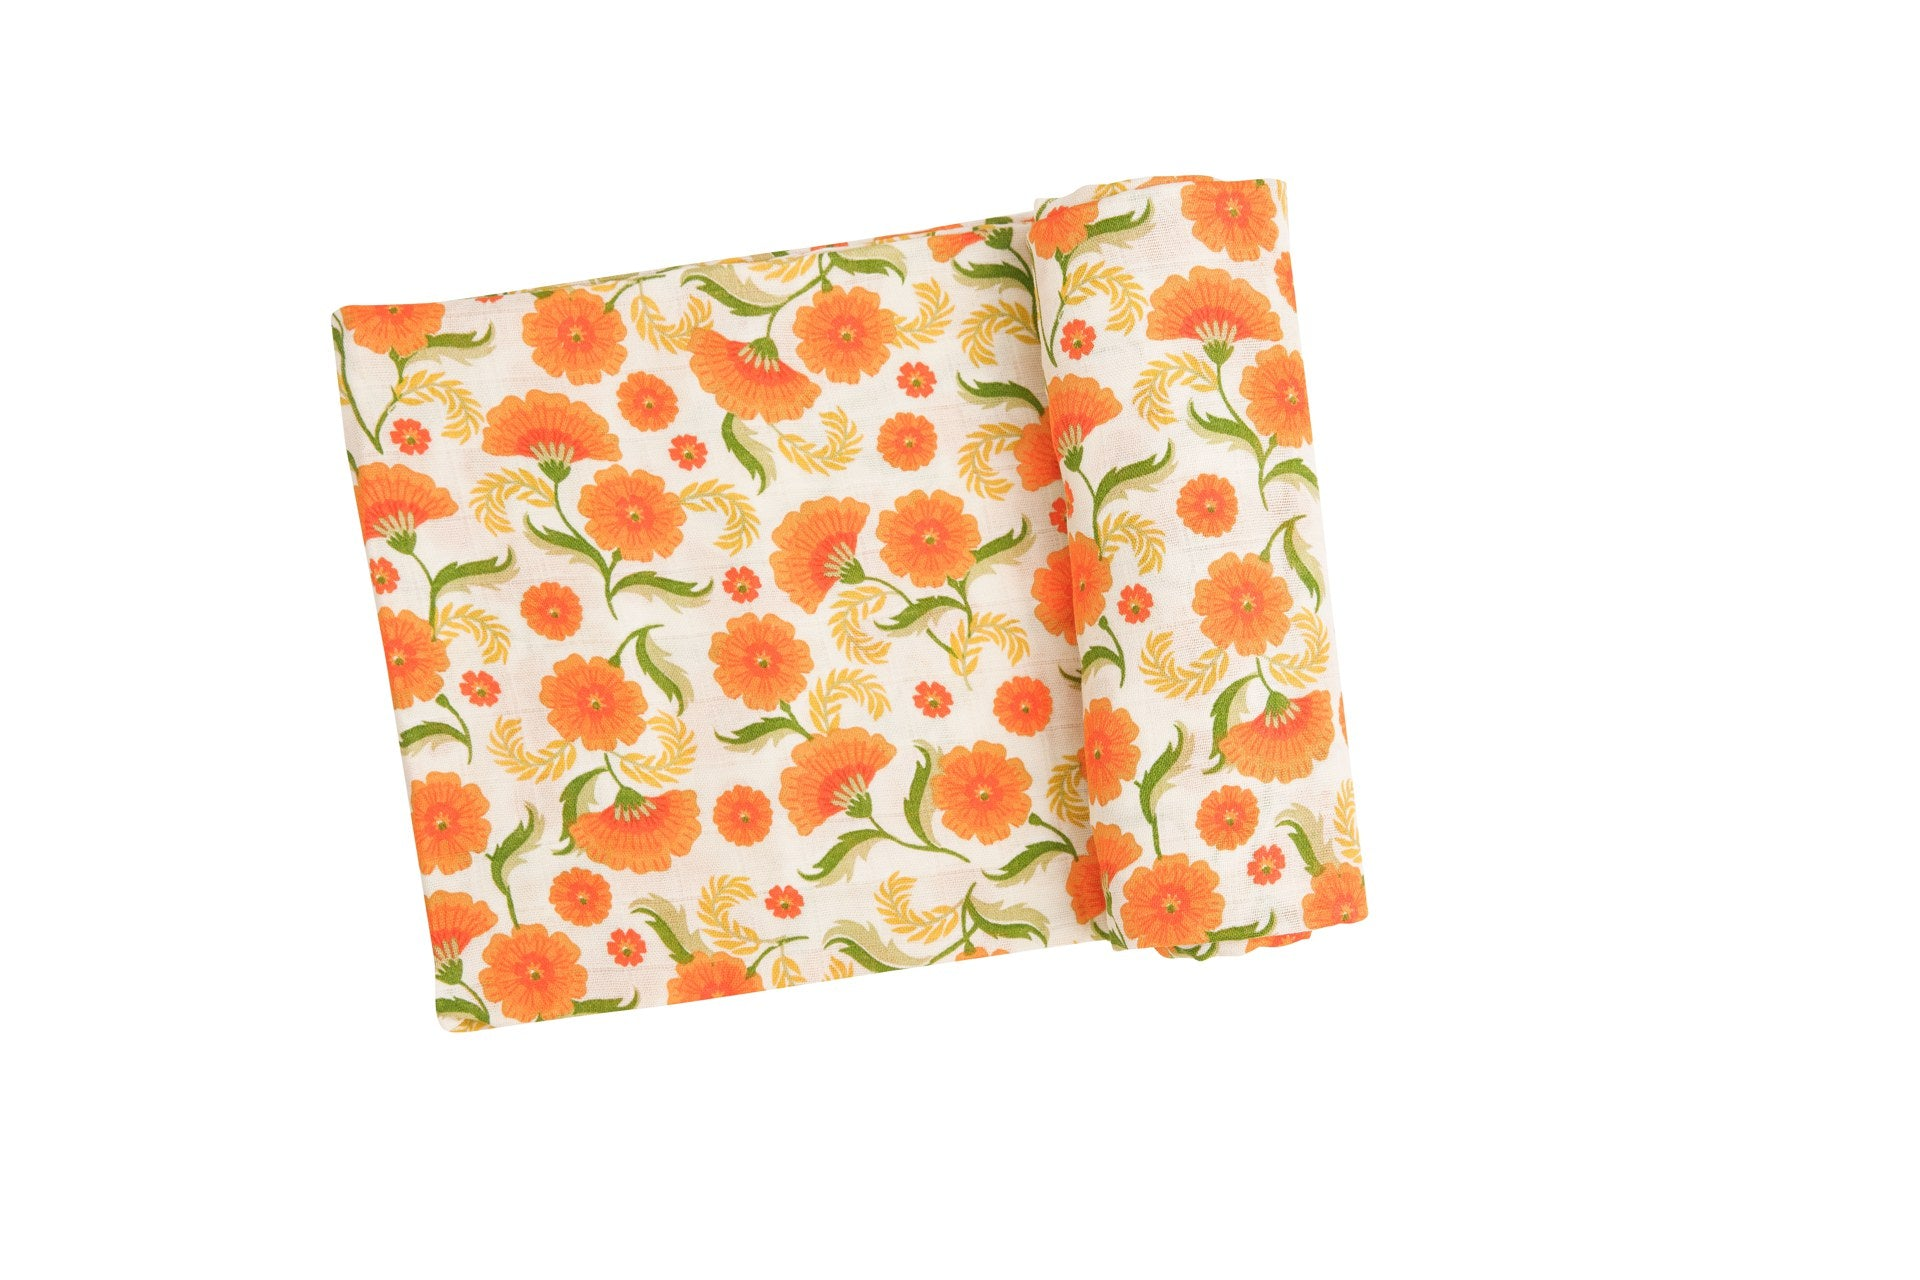 Marigold Swirl Swaddle Blanket Orange